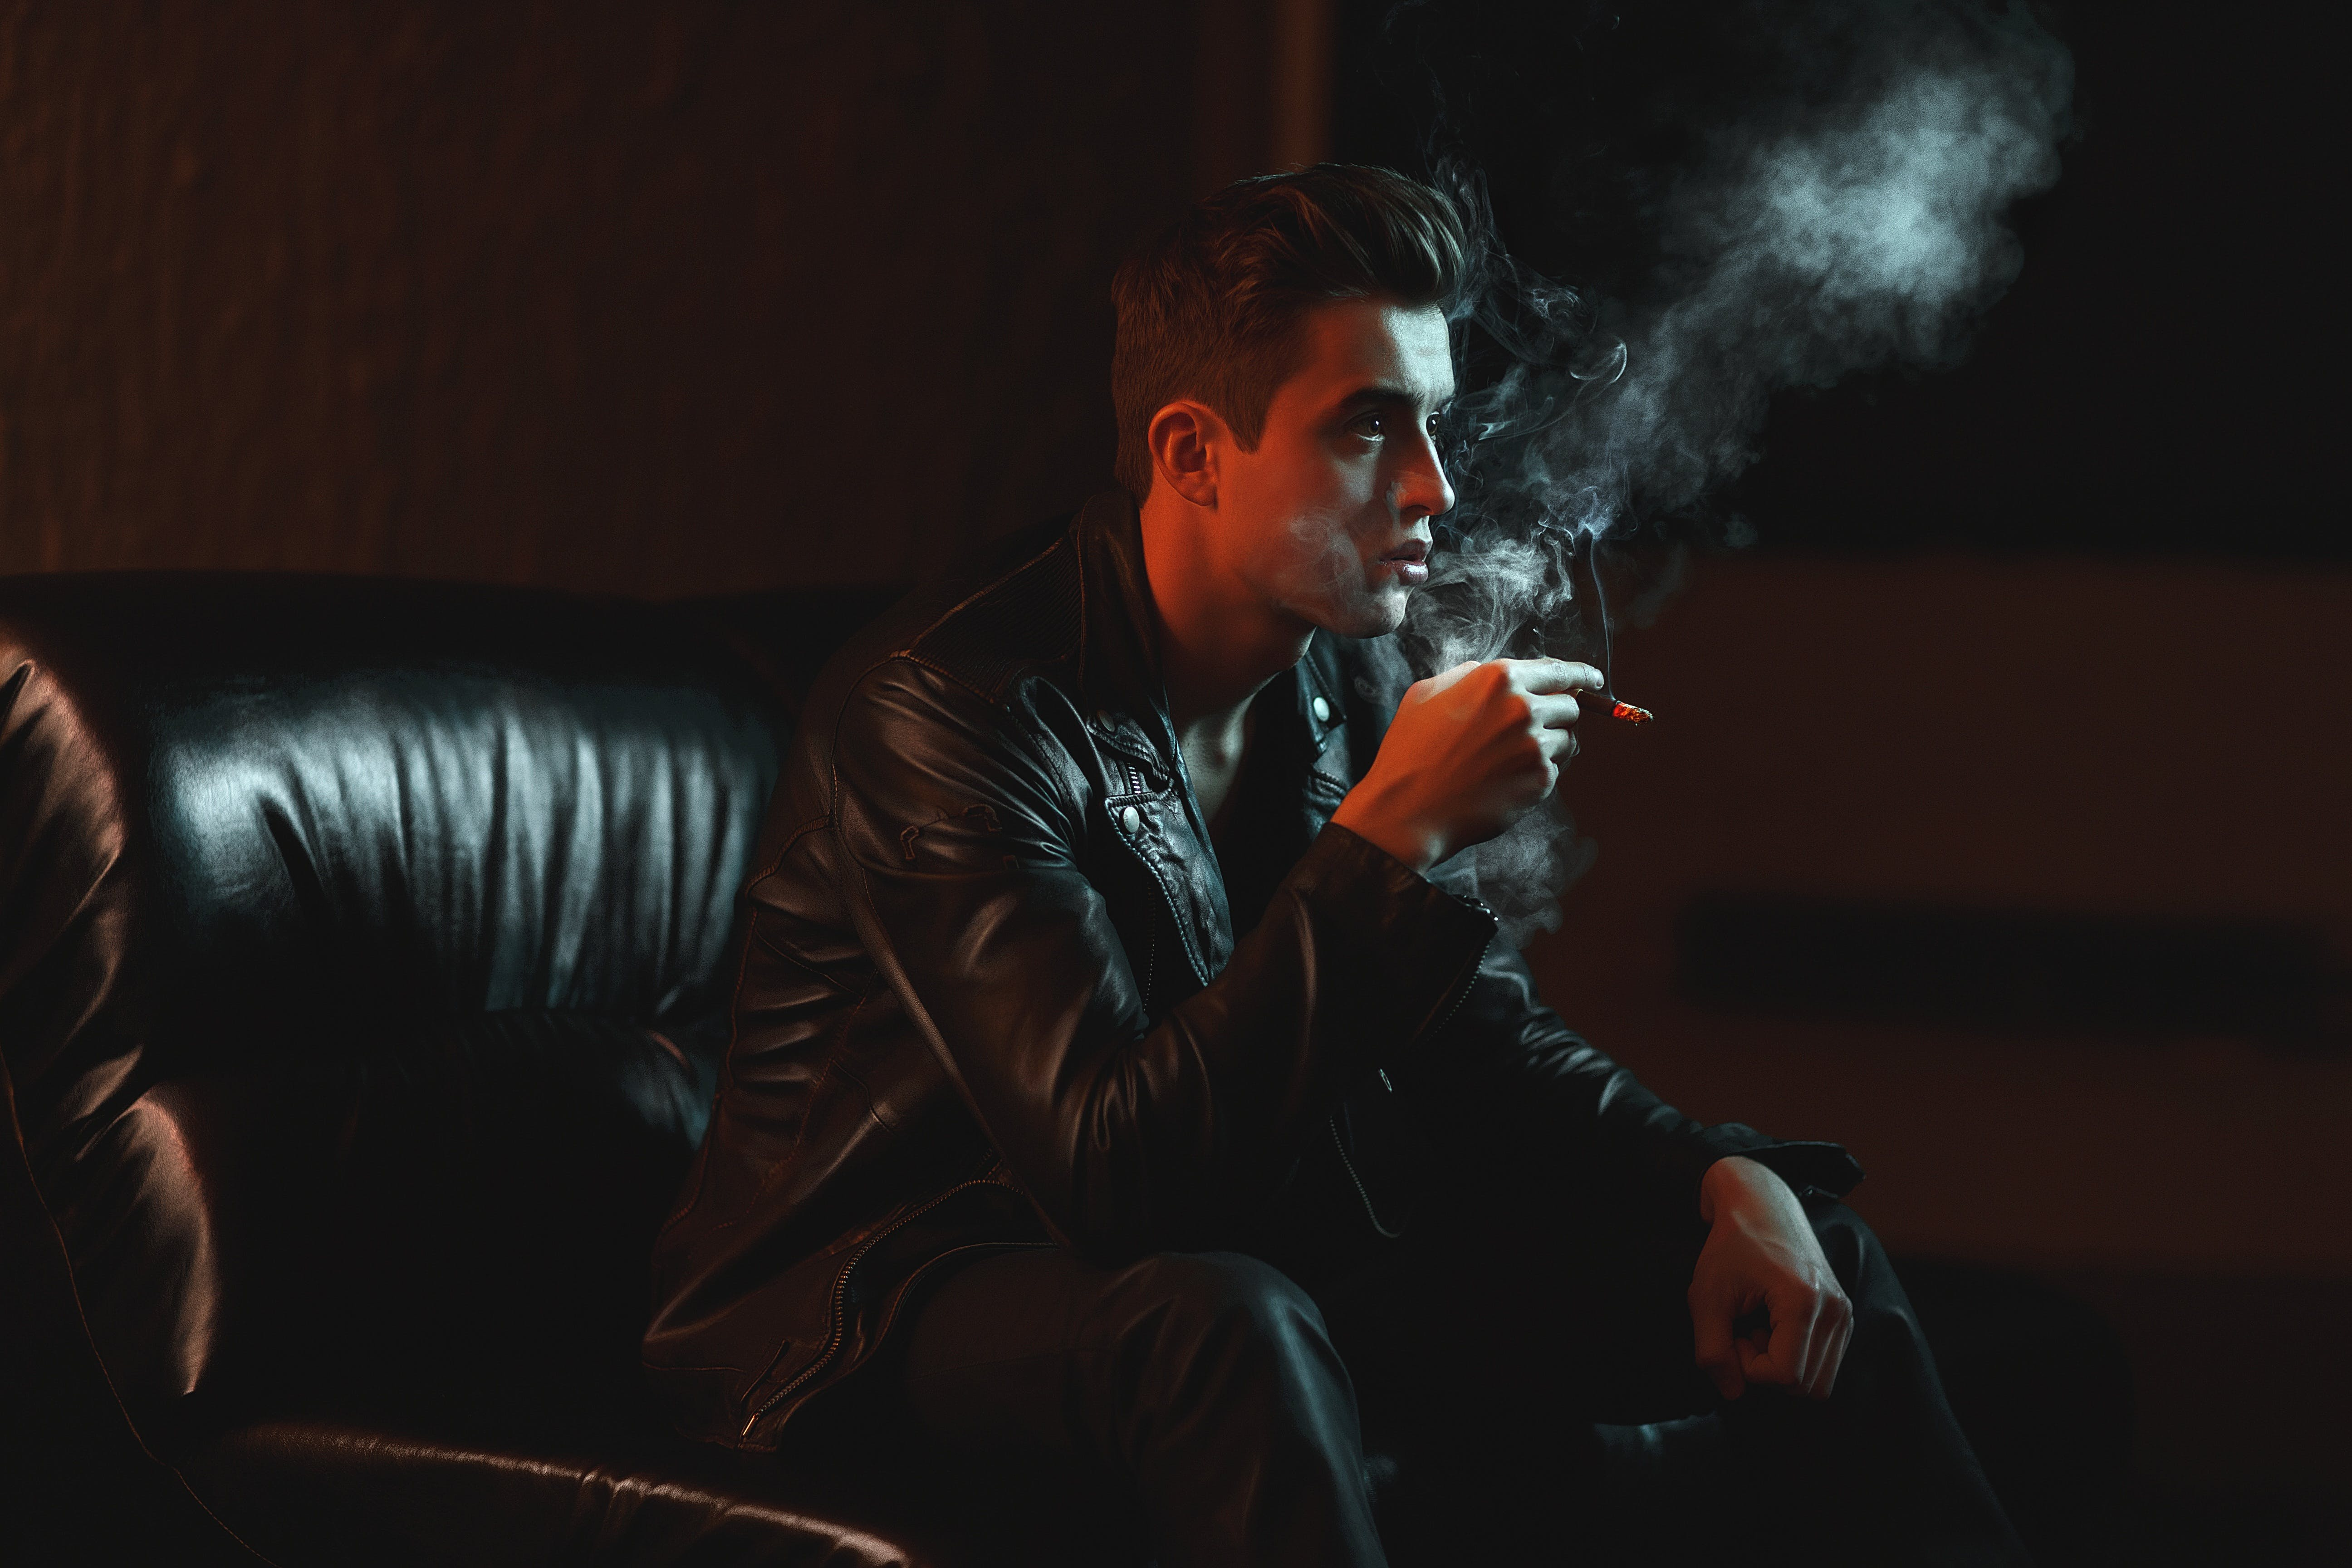 Man Holding Cigarette While Sitting on Sofa